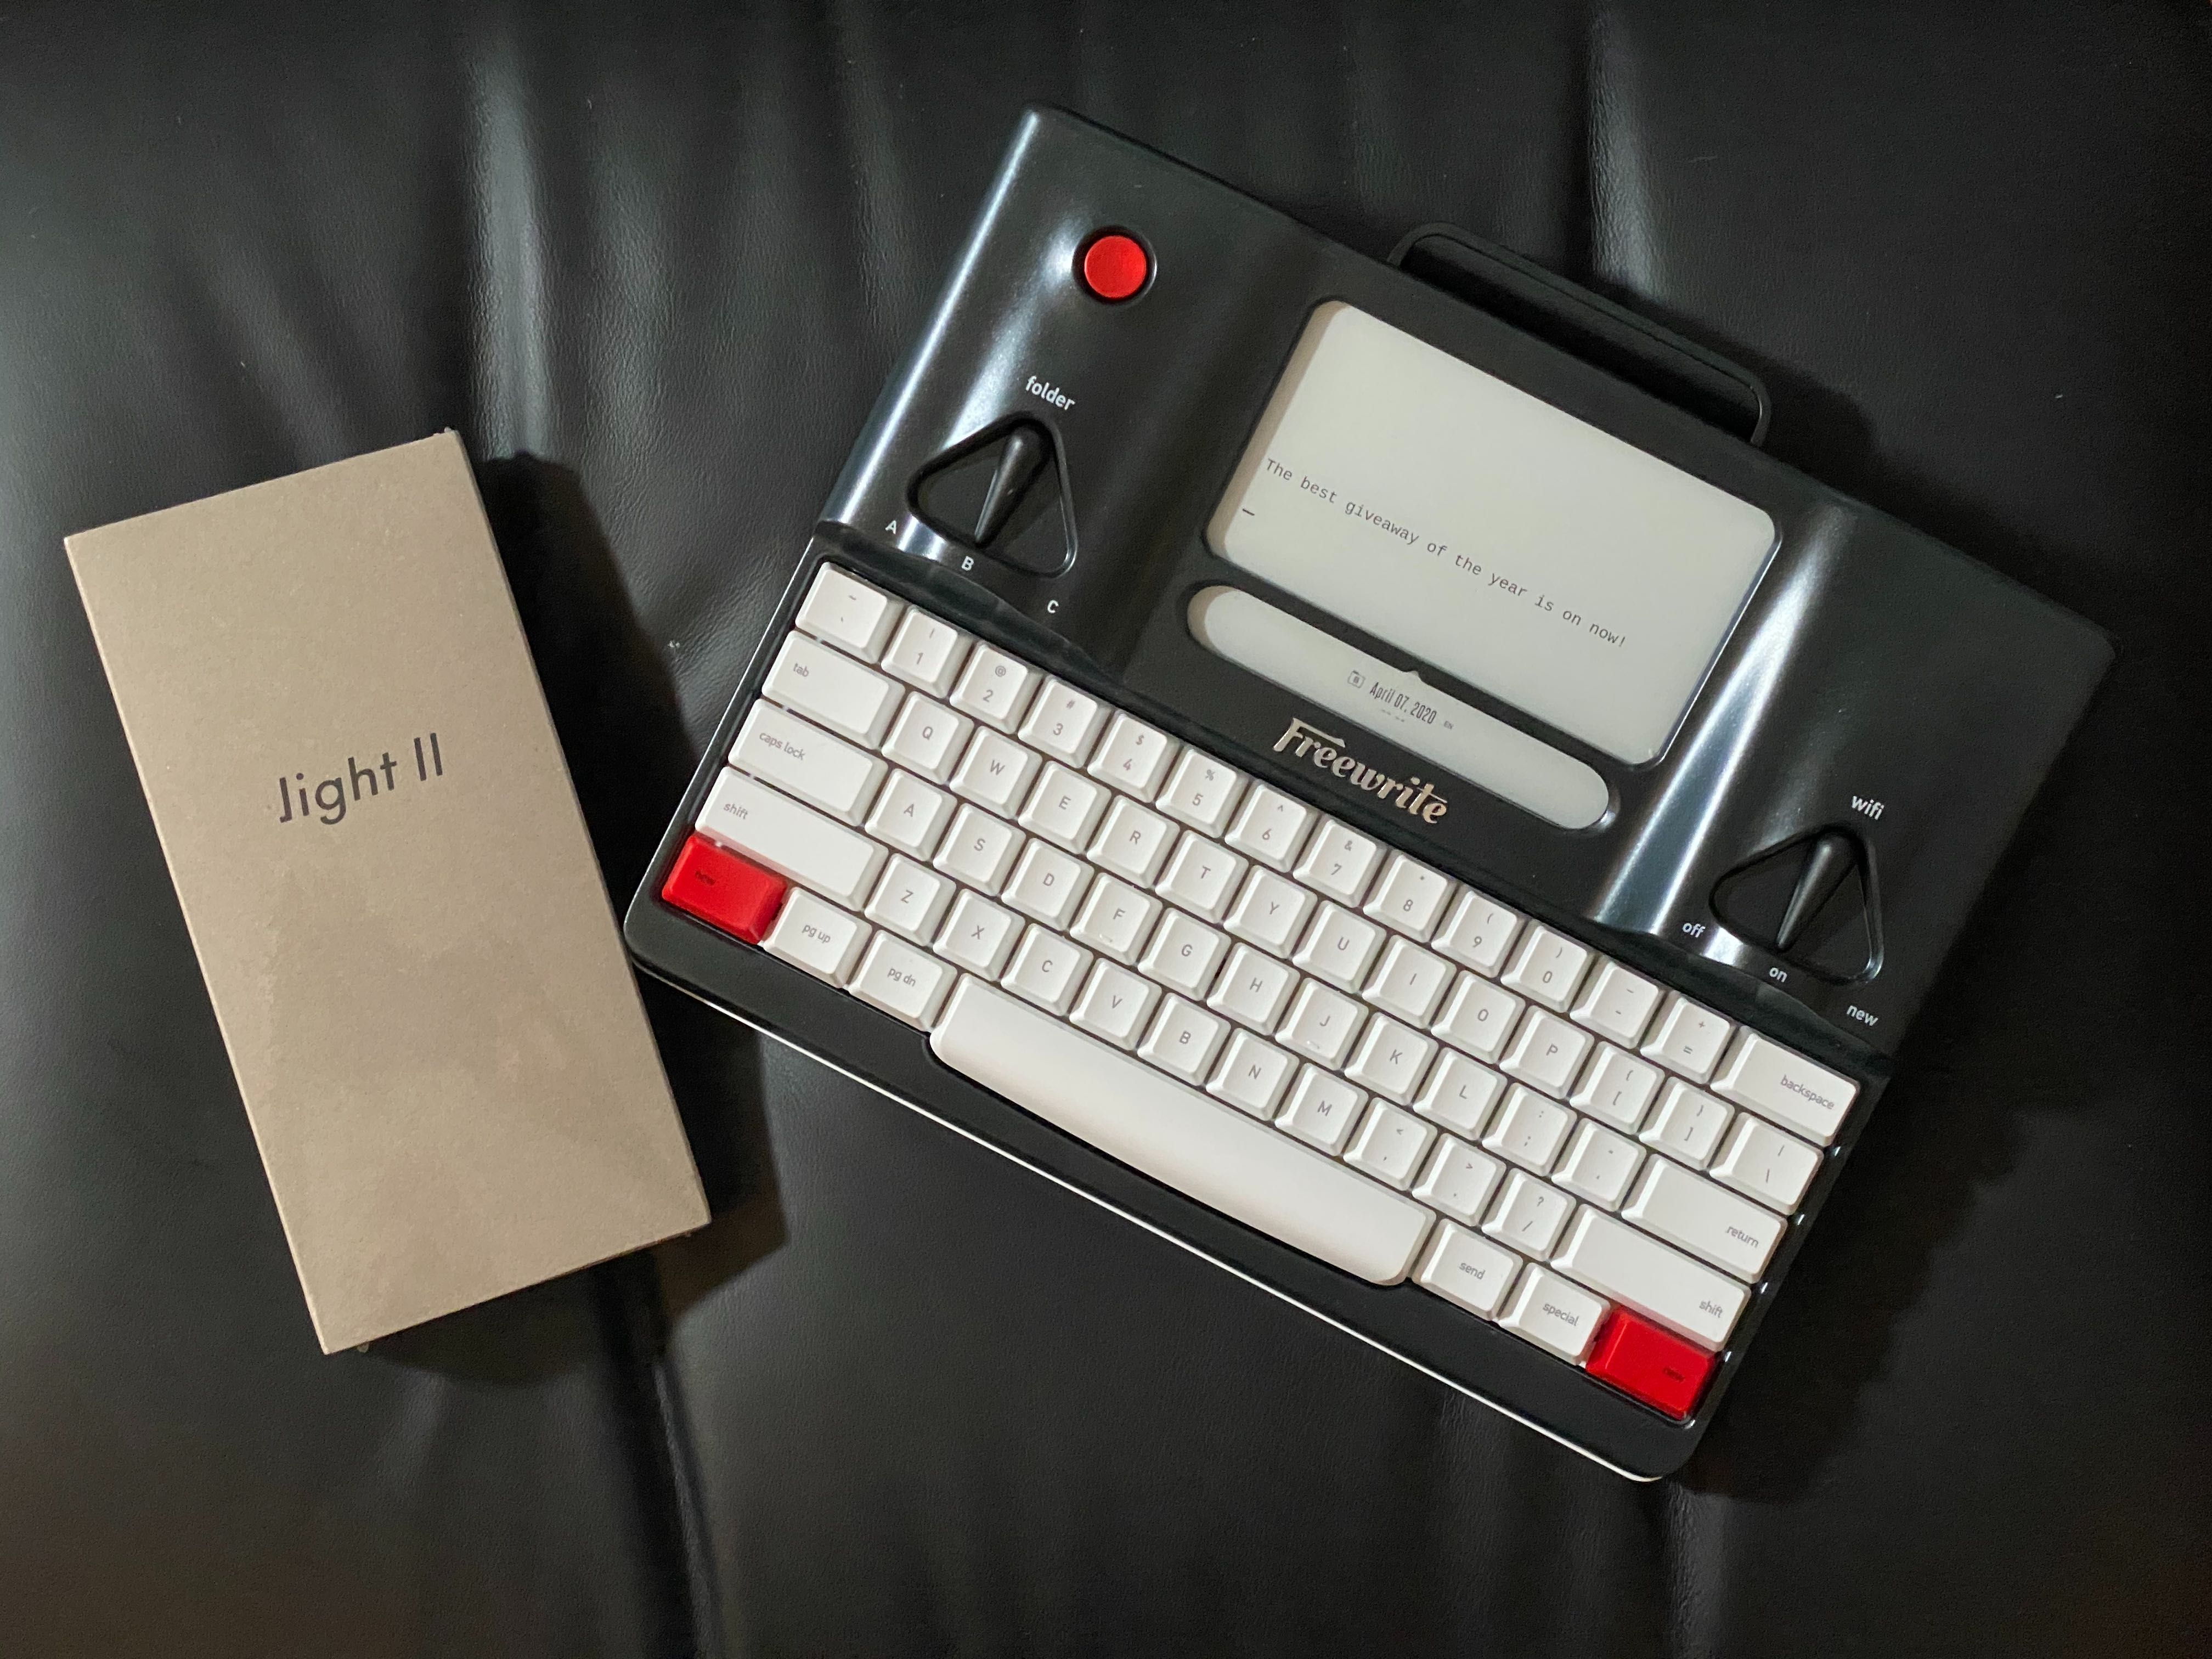 Freewrite + Light II Phone Giveaway by Astrohays